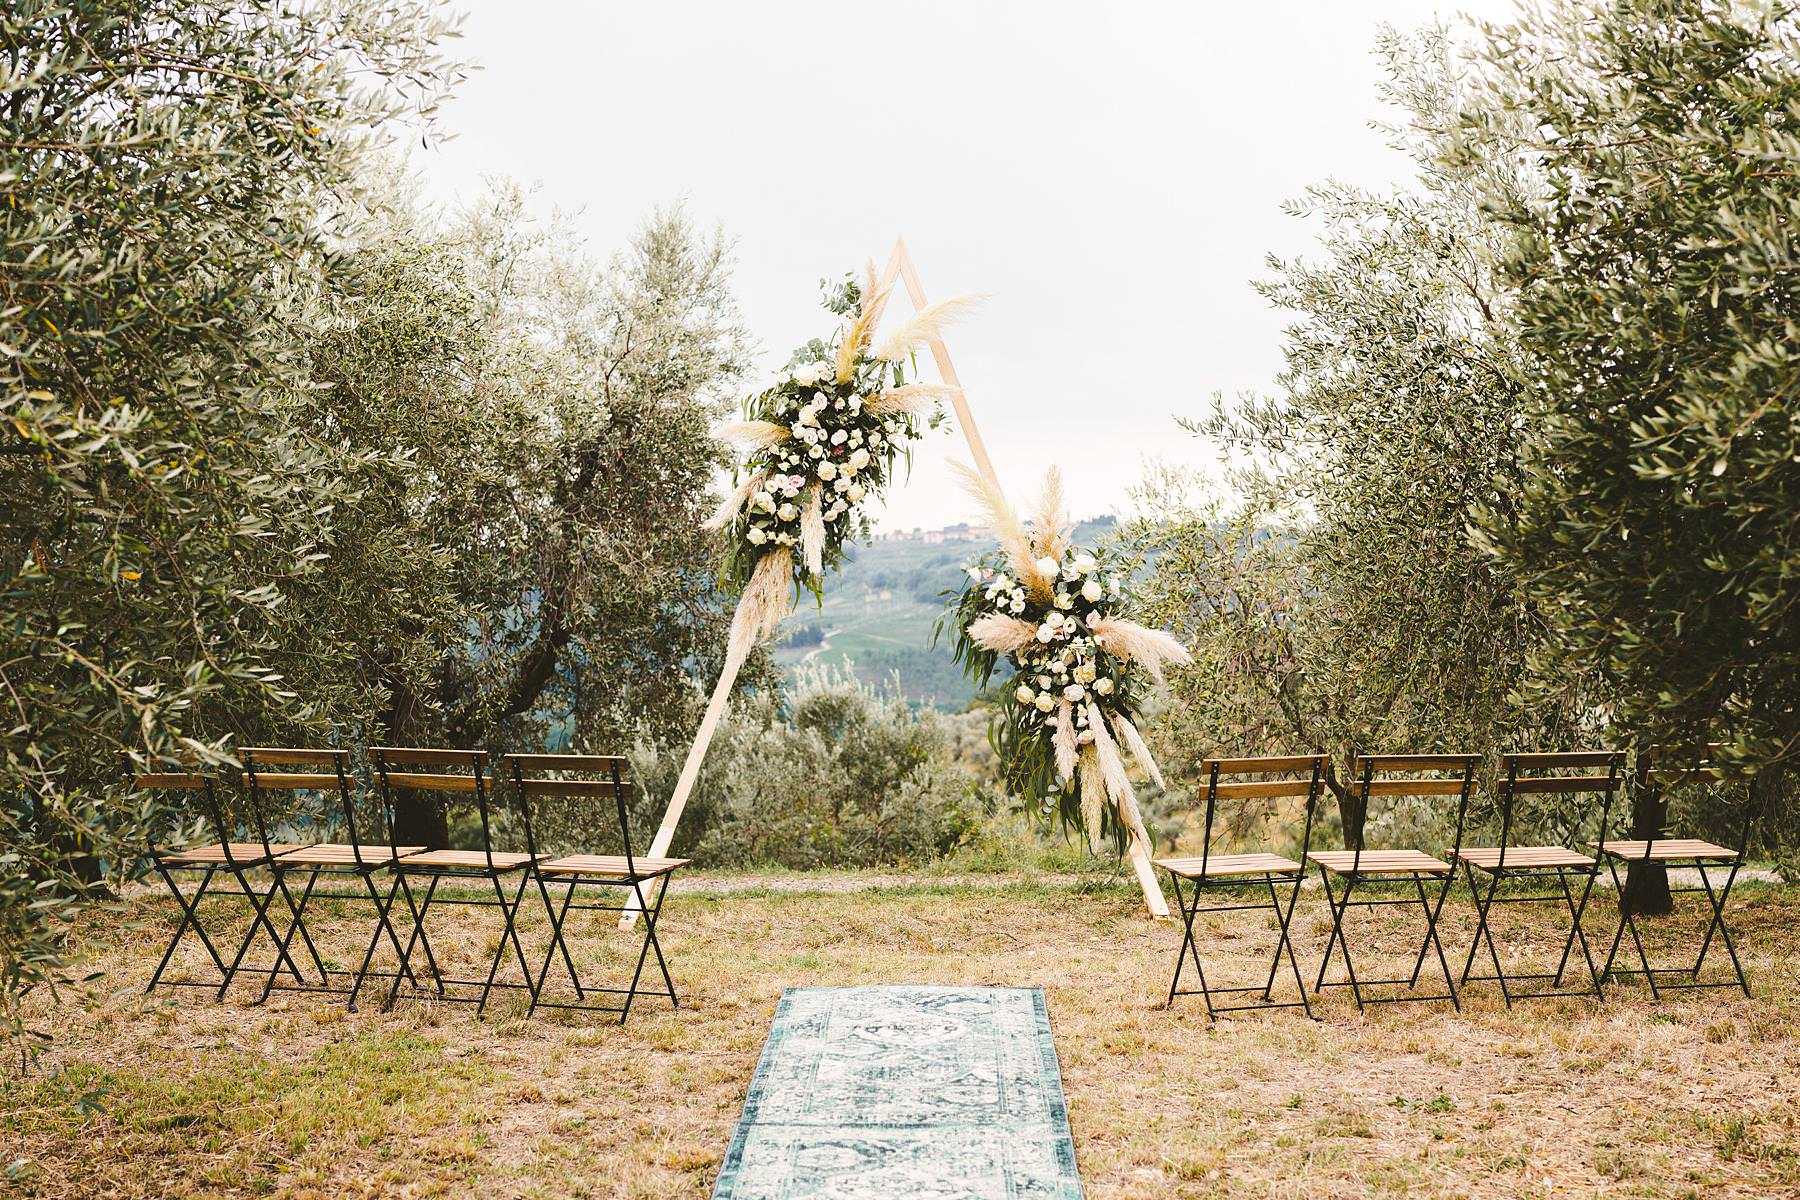 The triangular shape that witnessed Georgie and Patrick promises of love was a stunning frame, standing out against the silver olive groves that surrounded the couple and guests